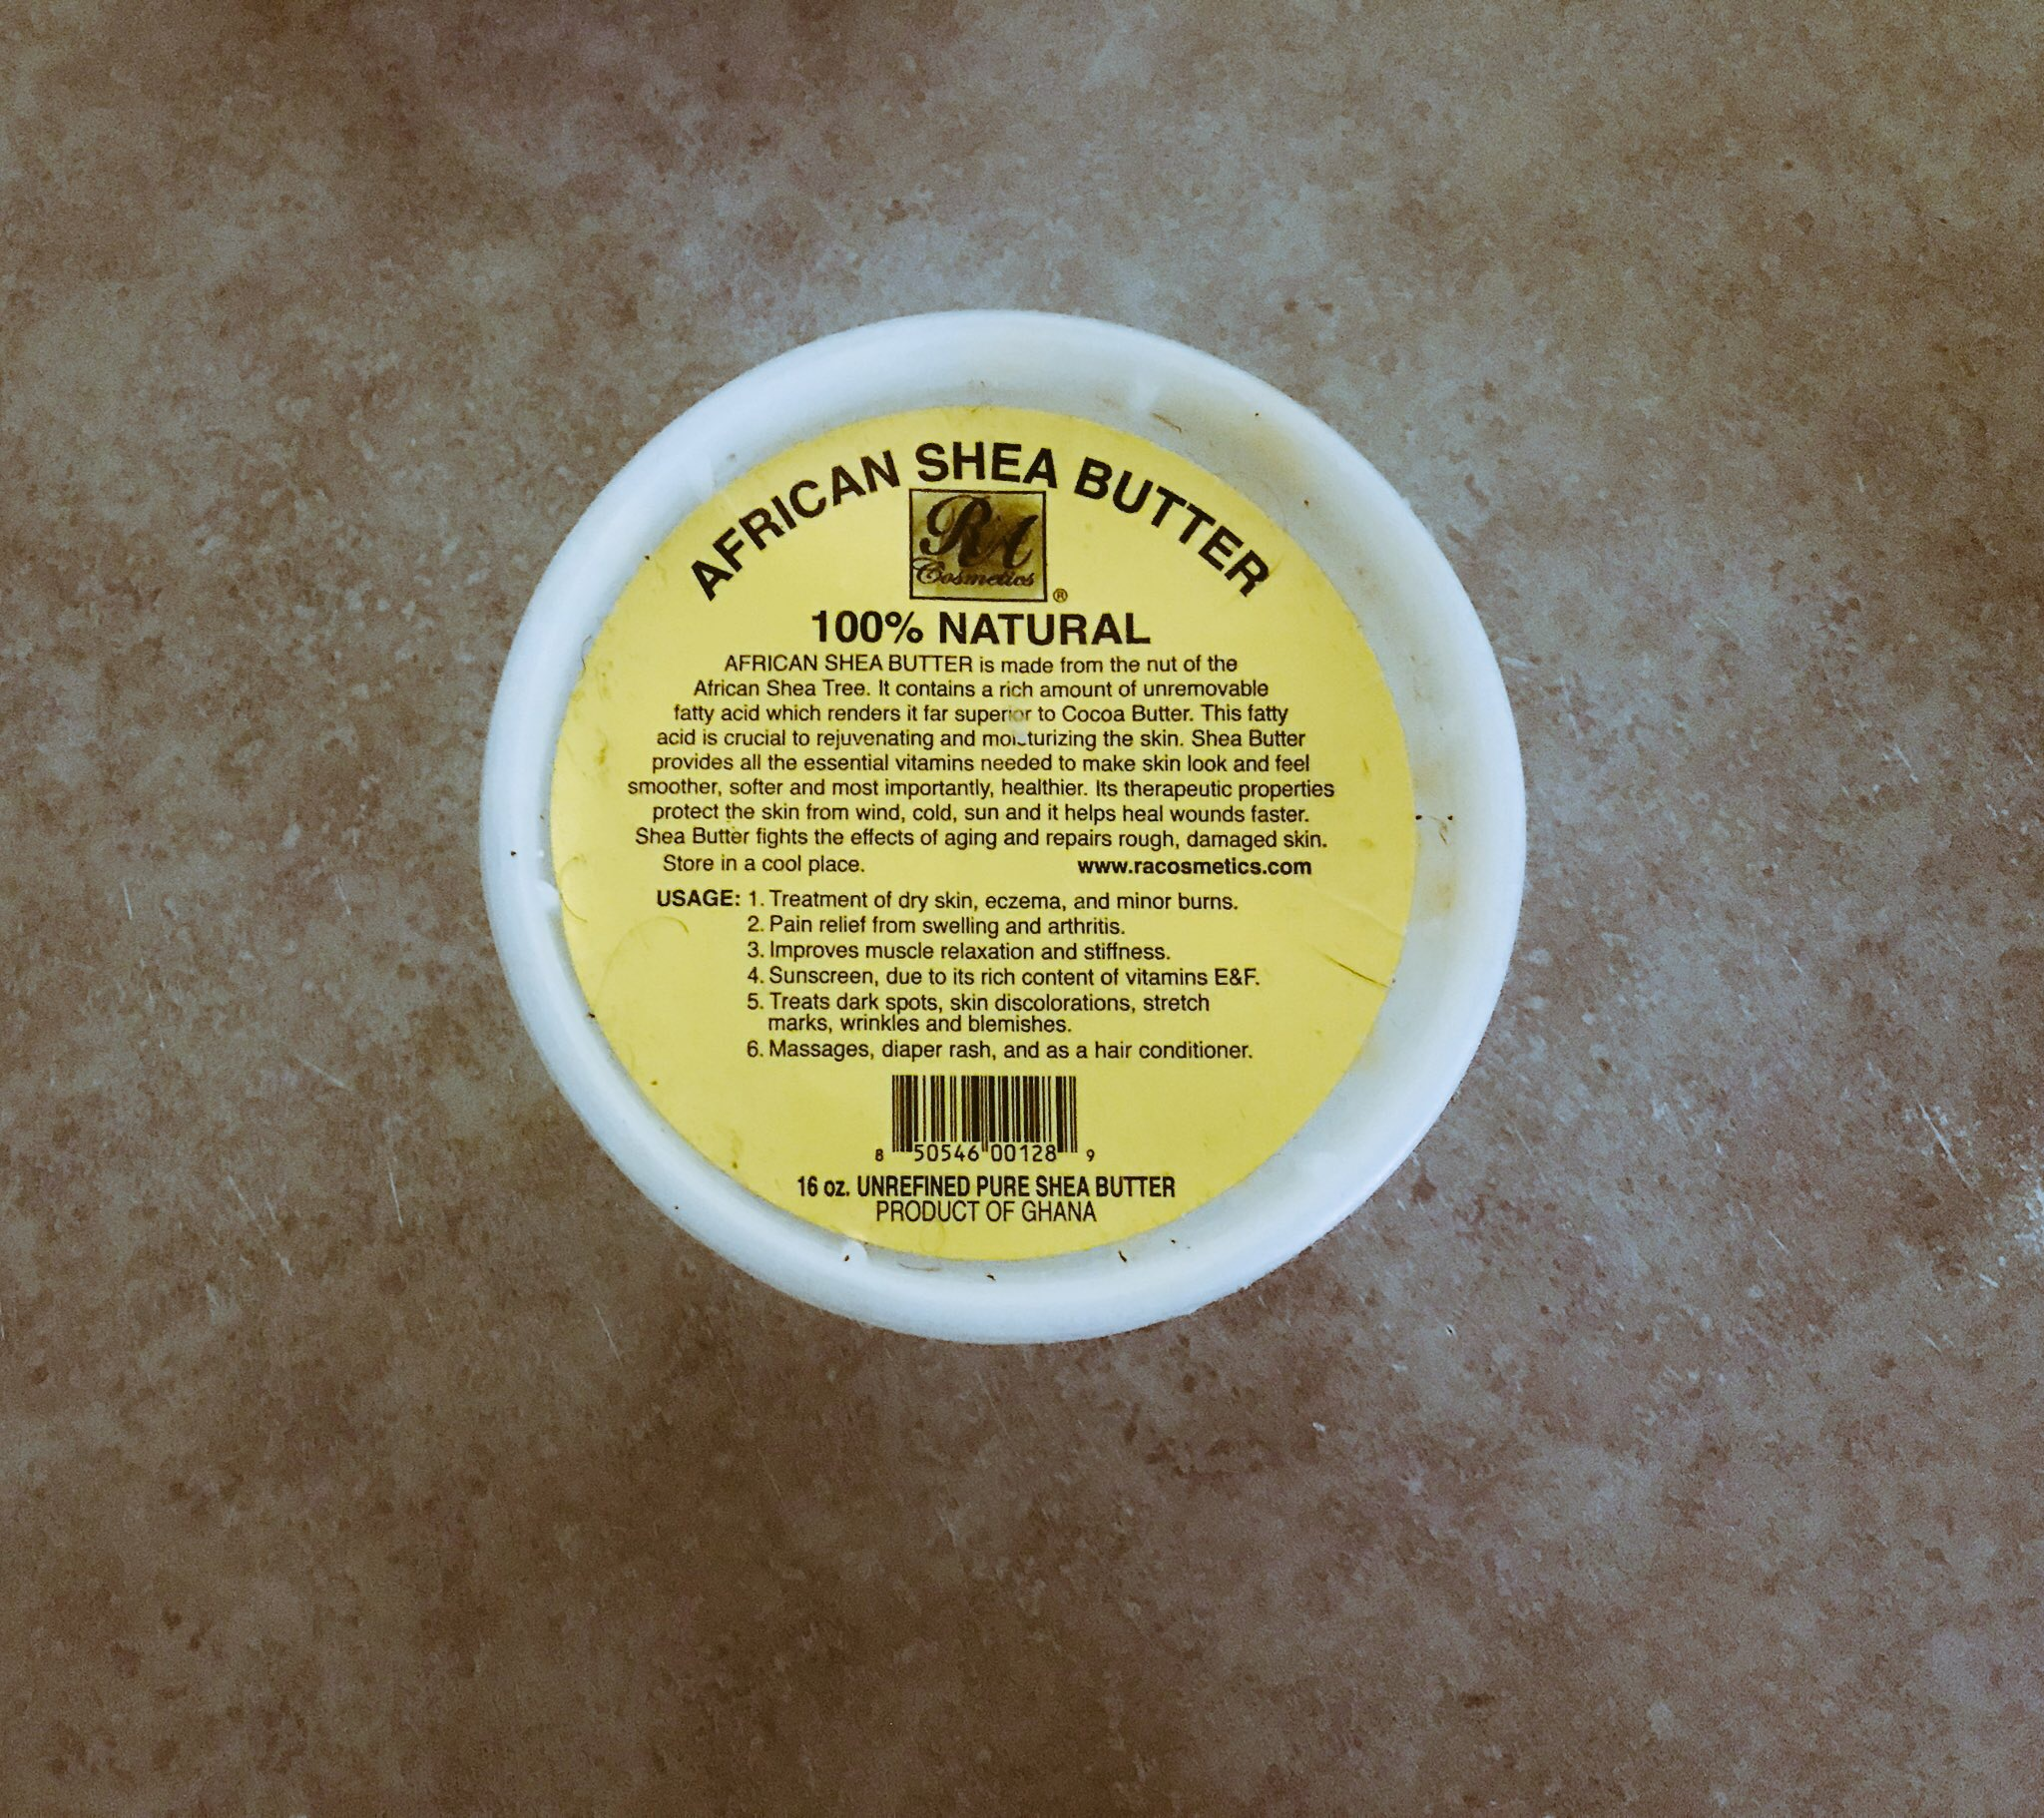 Top 3 Benefits of Using Shea Butter   Beauty plays a big role in my life. I'm constantly trying new products, new routines and regimens and changing them quite often. That being said, I wanted to share with you one of my staple products for my hair and skin: Shea Butter!